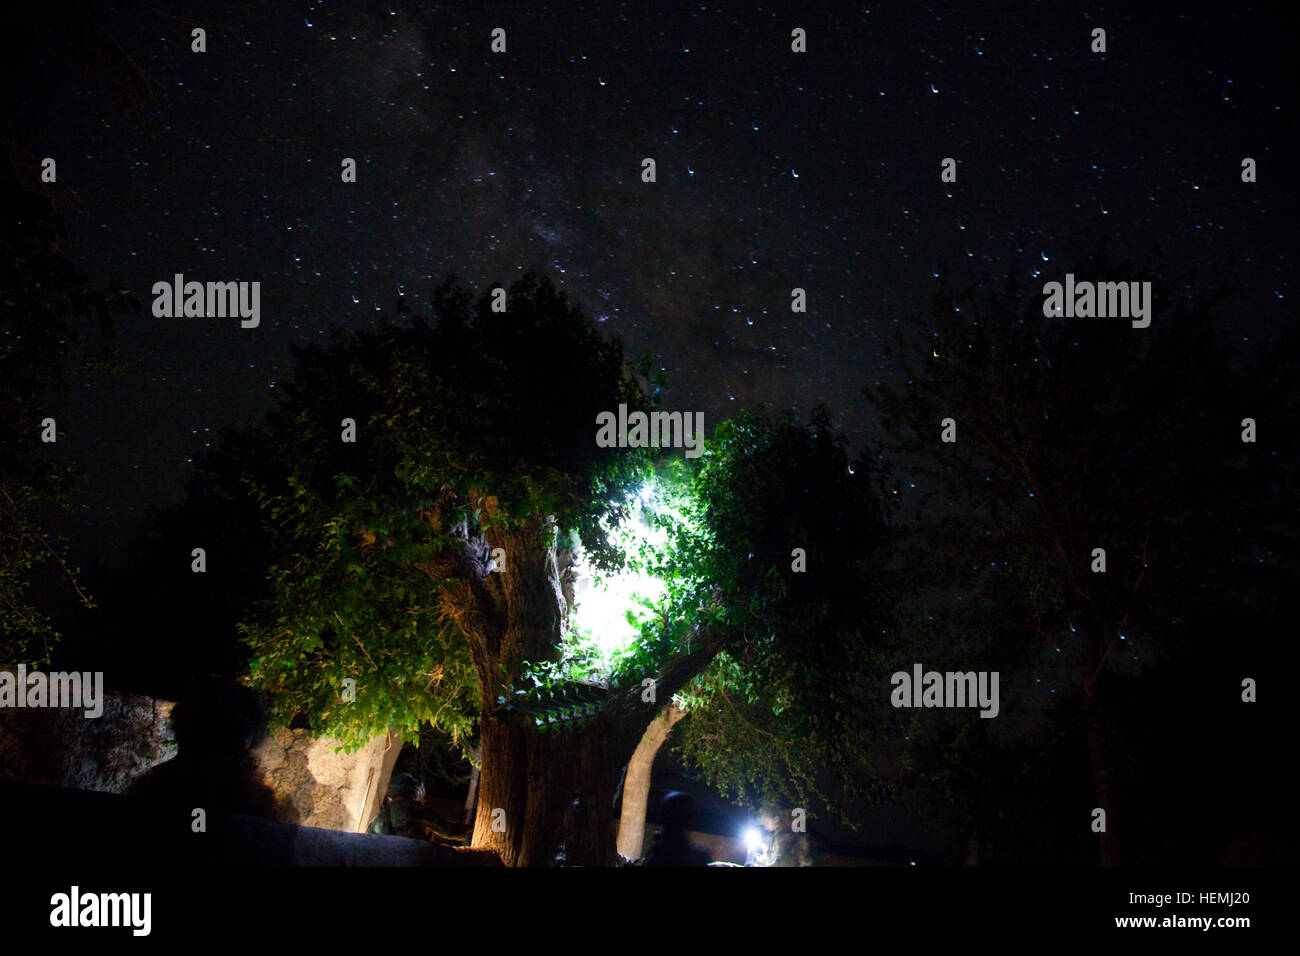 Members of an Afghan and coalition security force search for an enemy in a tree during a night operation in Nawah - Stock Image